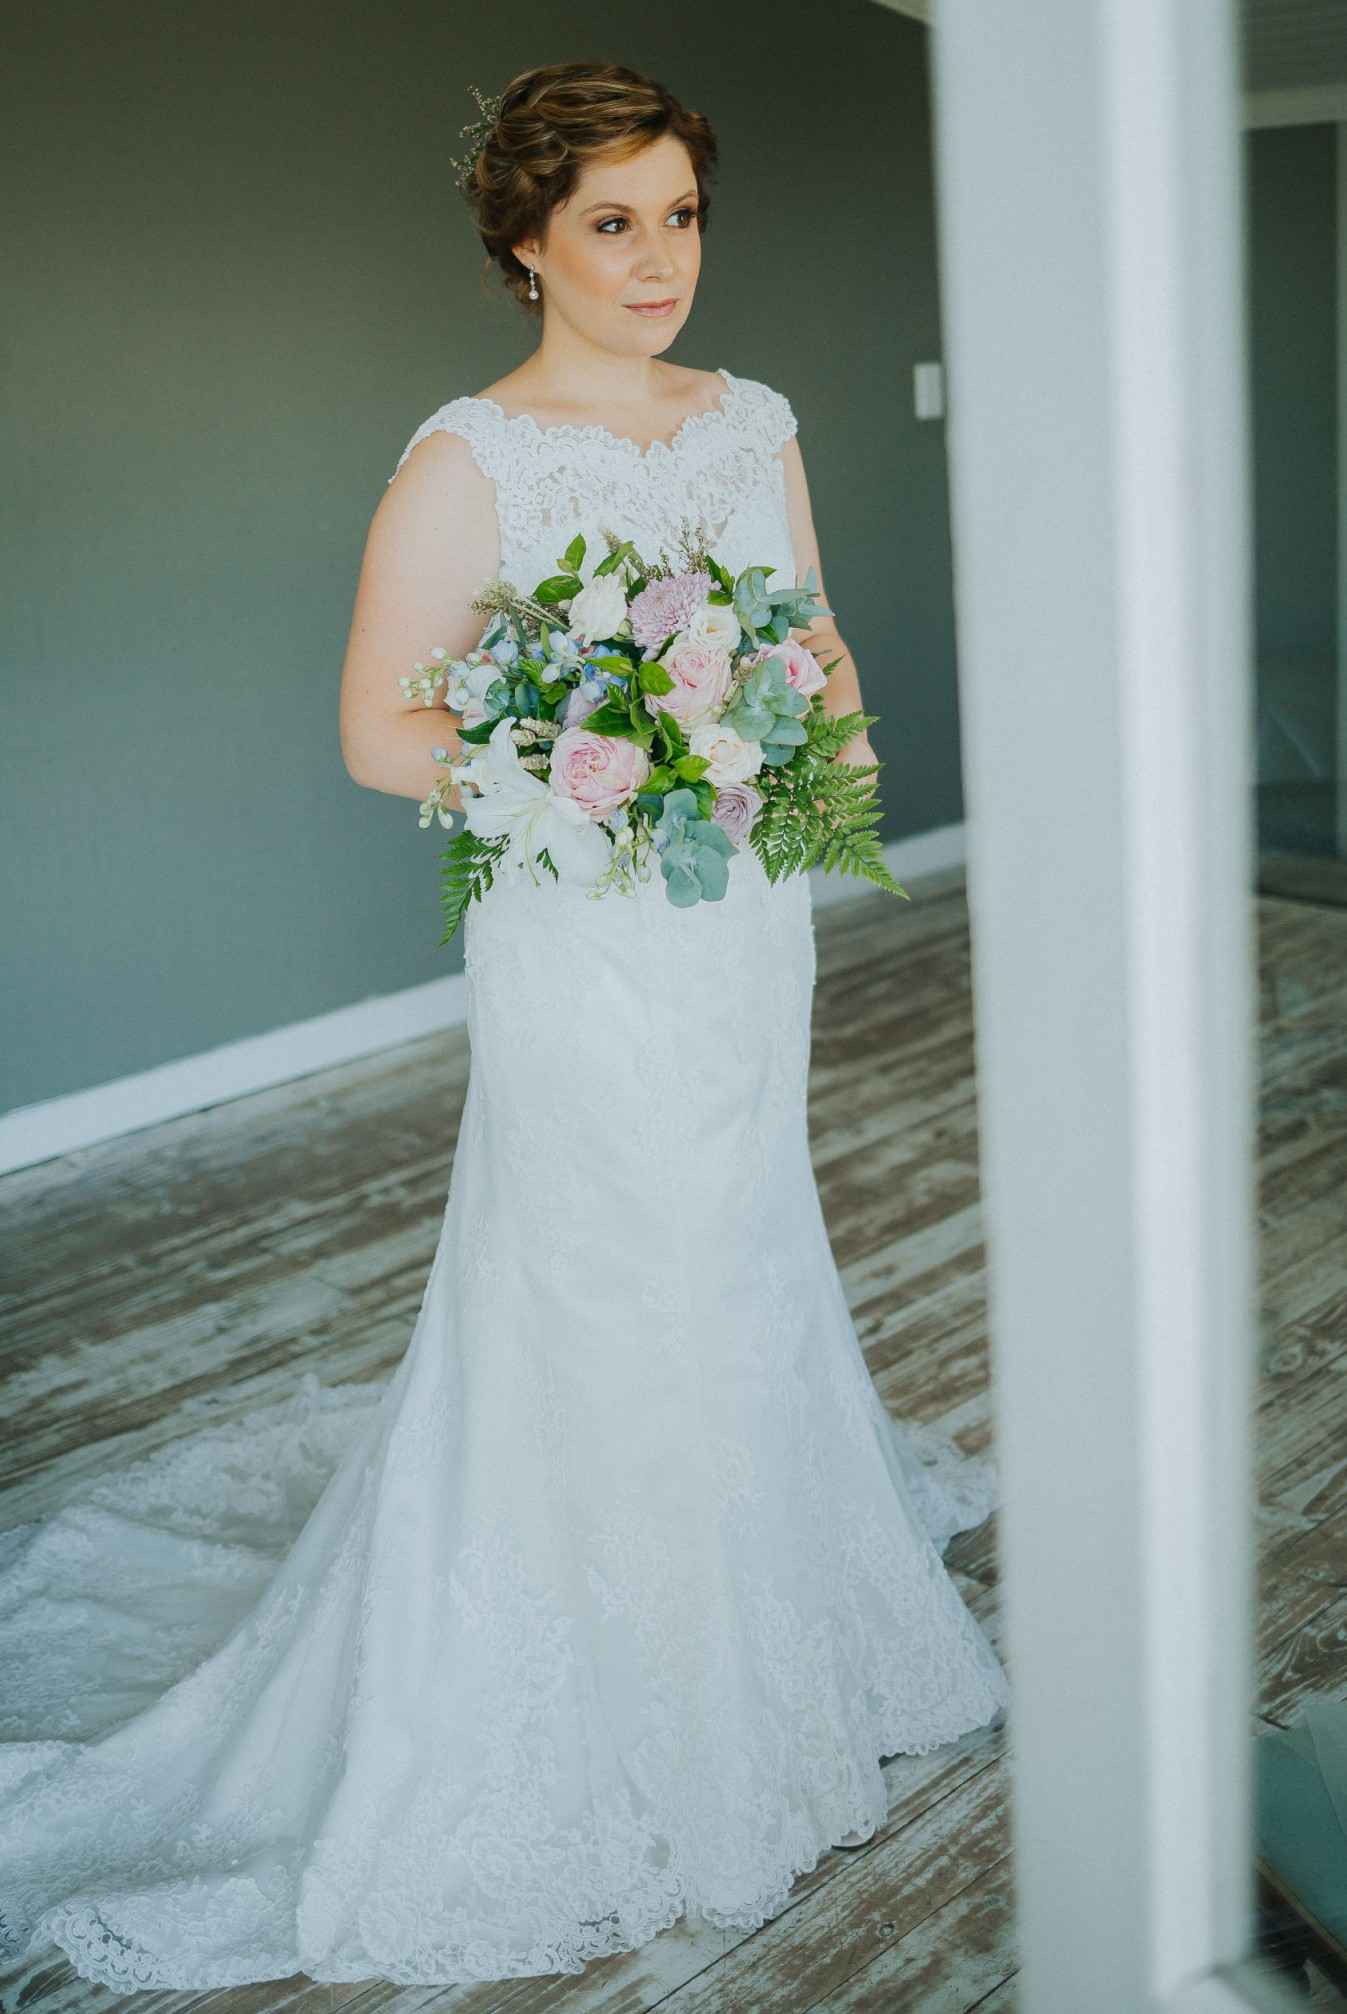 Dorable Second Hand Bridal Gowns Gift - All Wedding Dresses ...